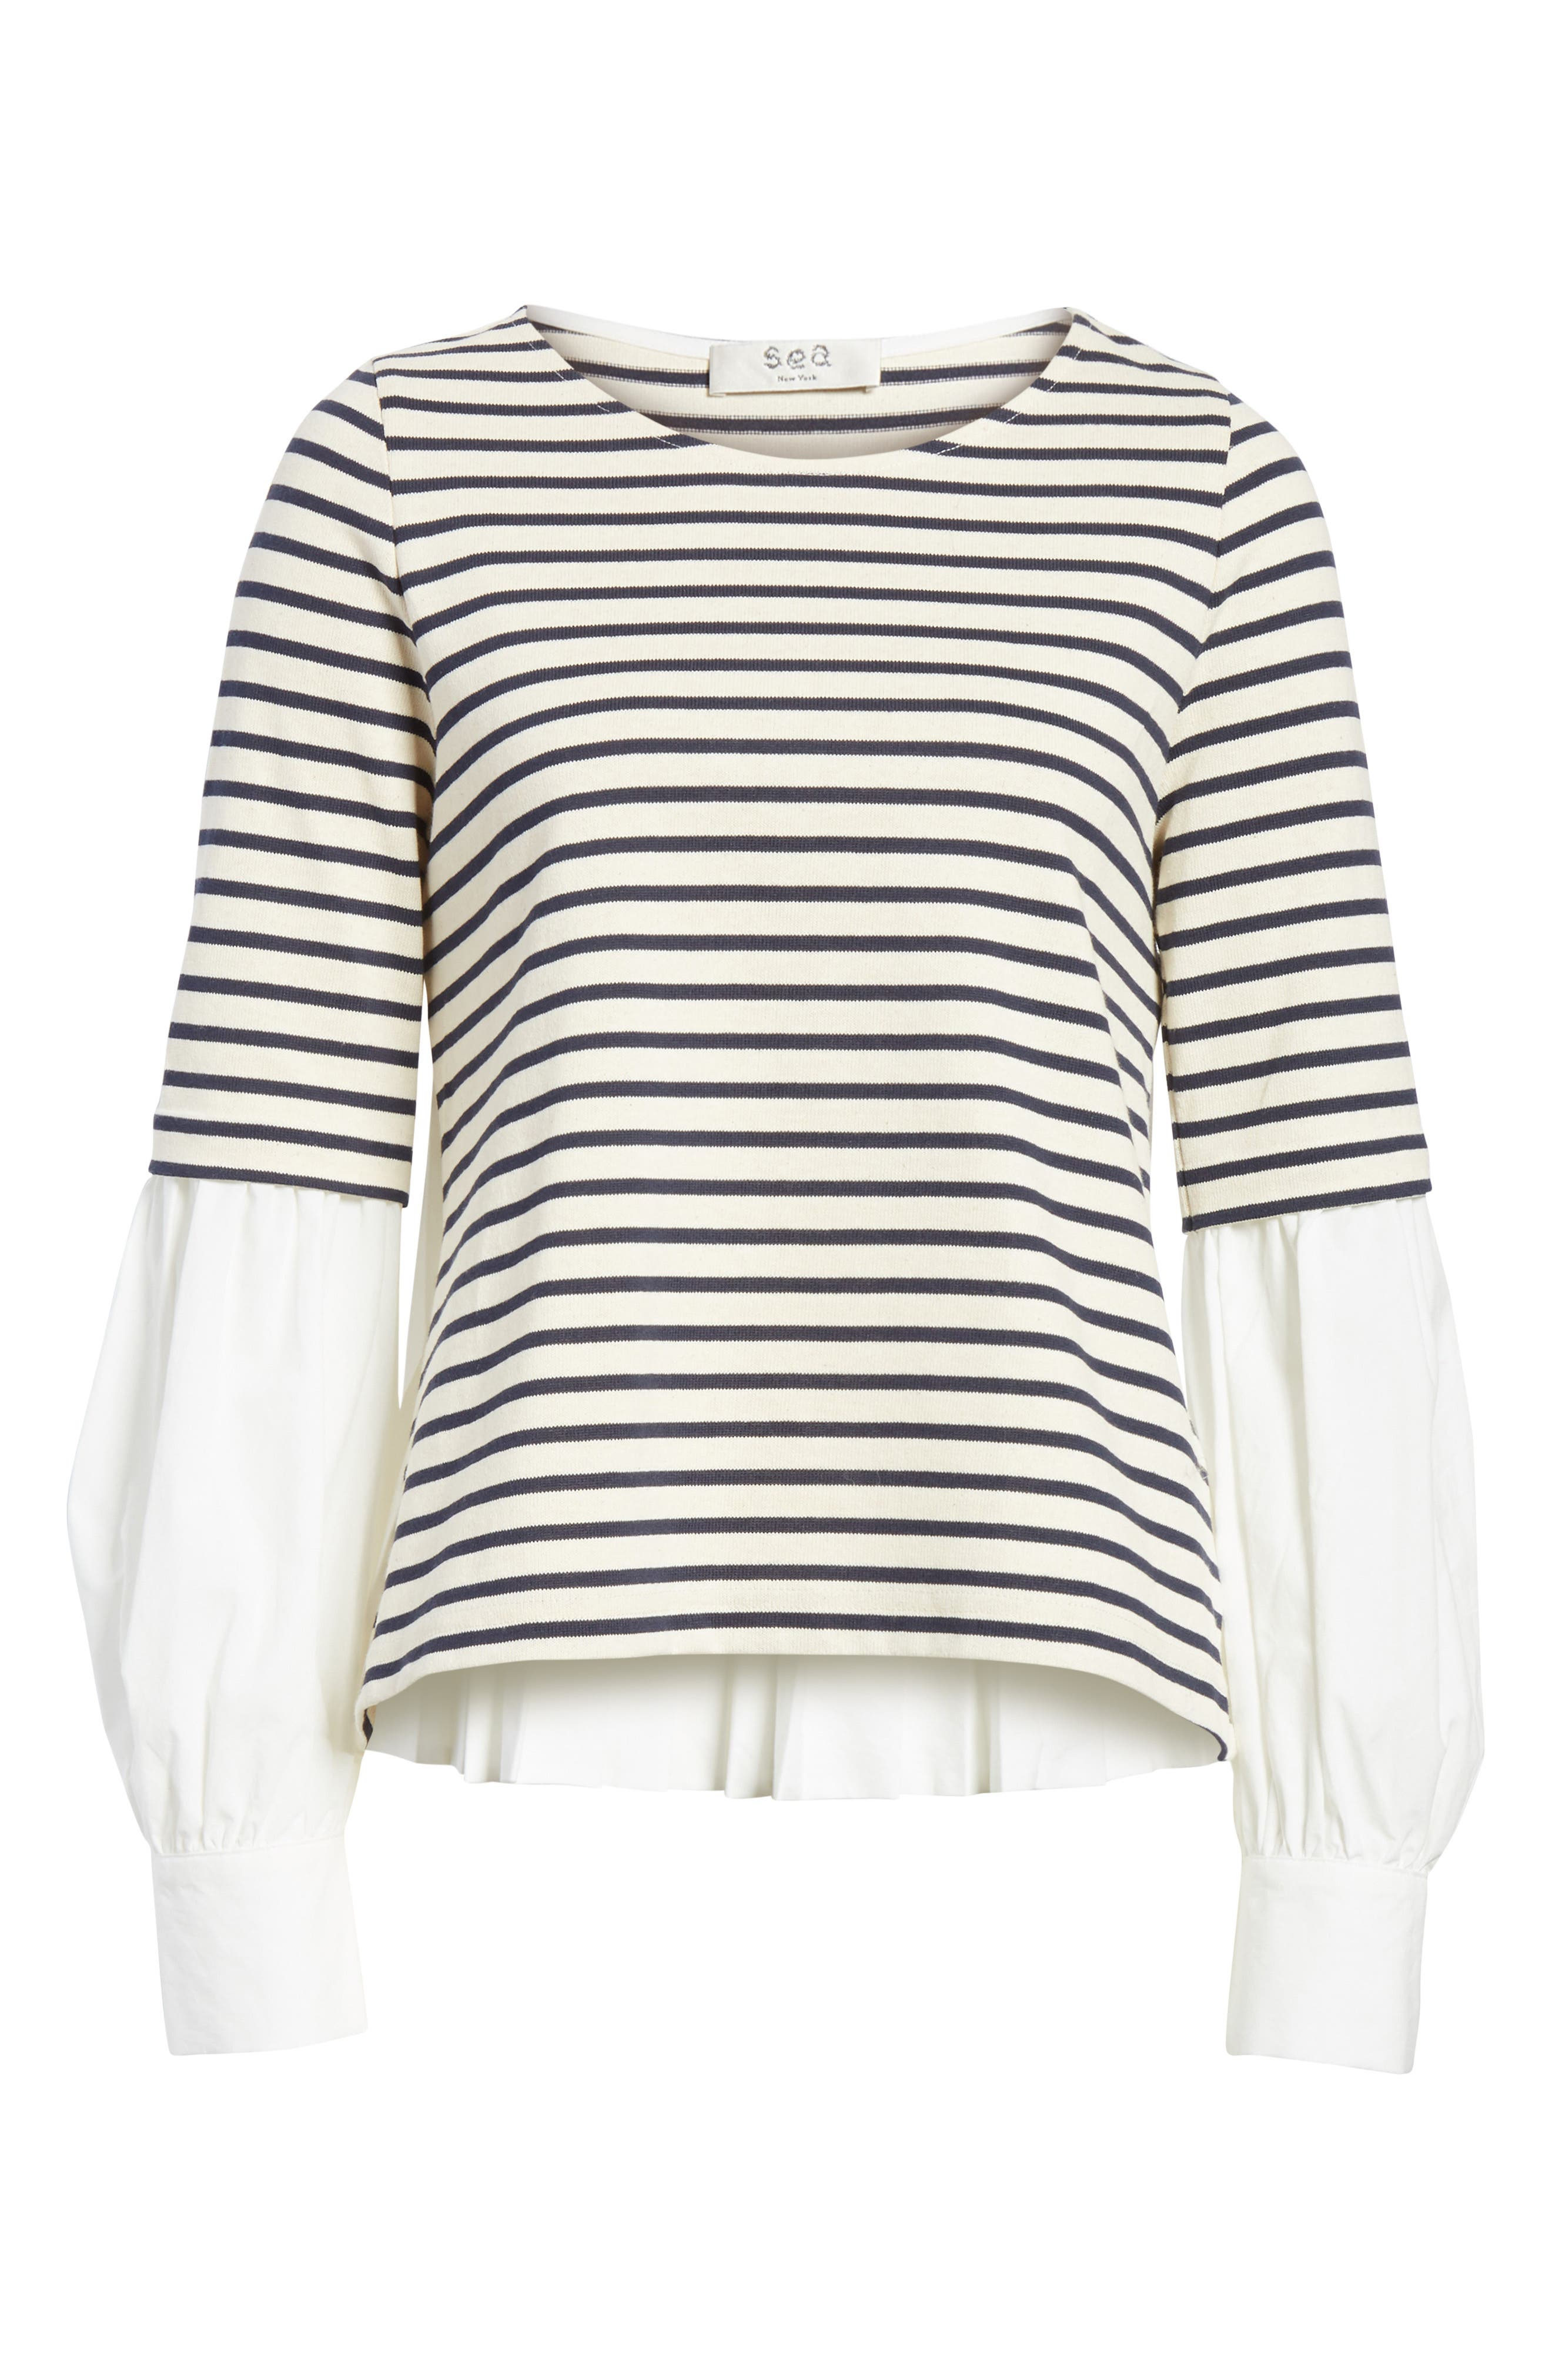 Levine Mixed Media Top,                             Alternate thumbnail 6, color,                             CREAM/ NAVY STRIPE